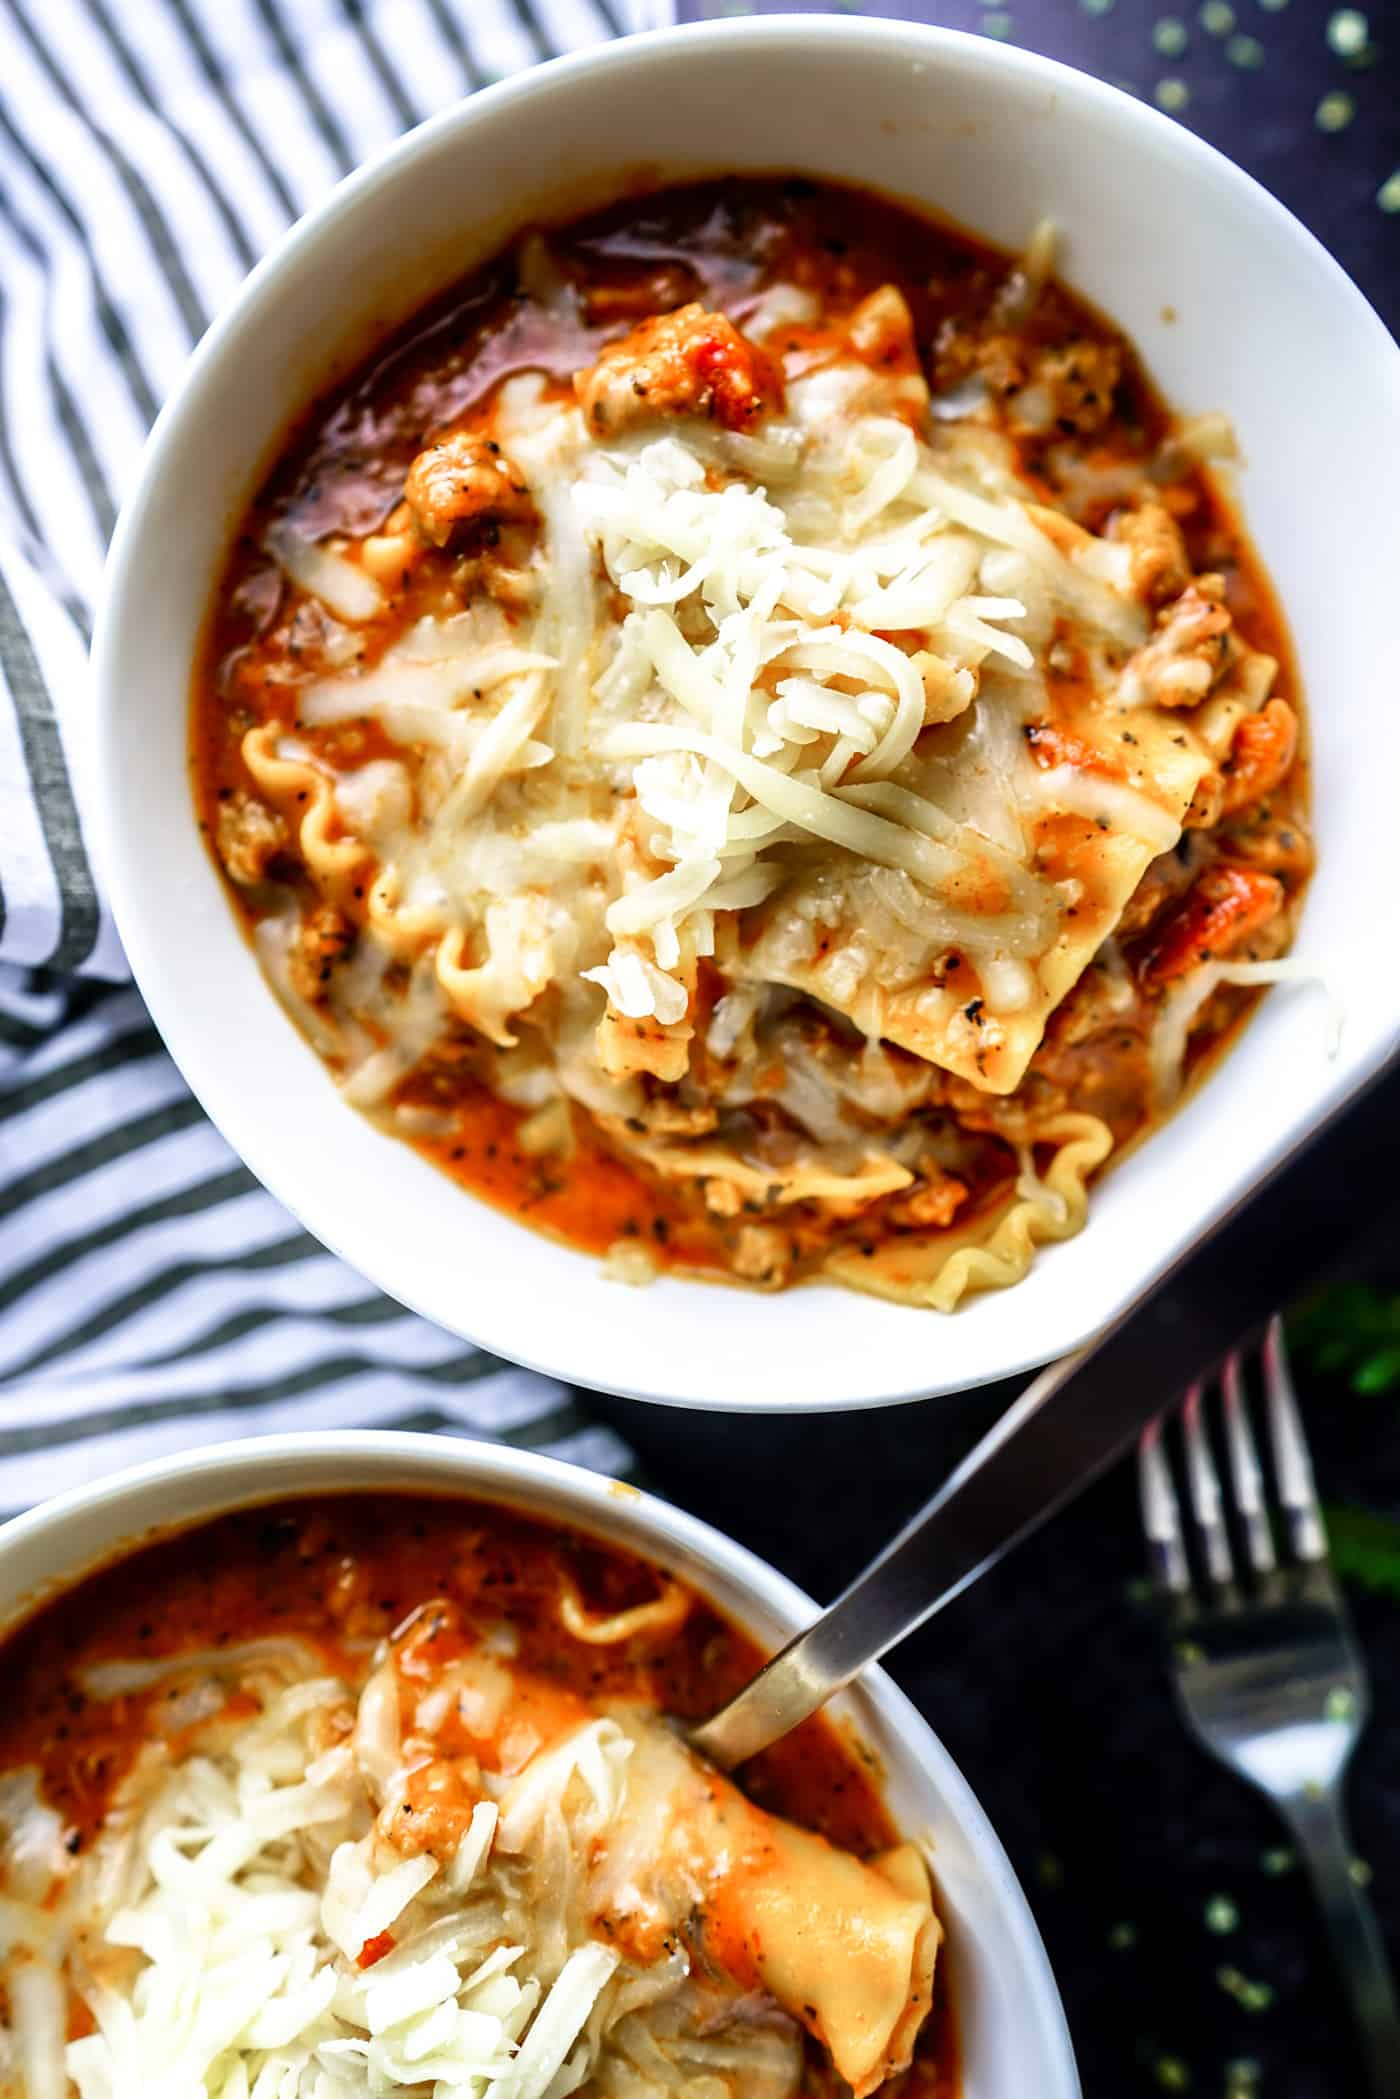 A Lily Love Affair shares an easy dinner recipe for Instant Pot Laszy Lasagna